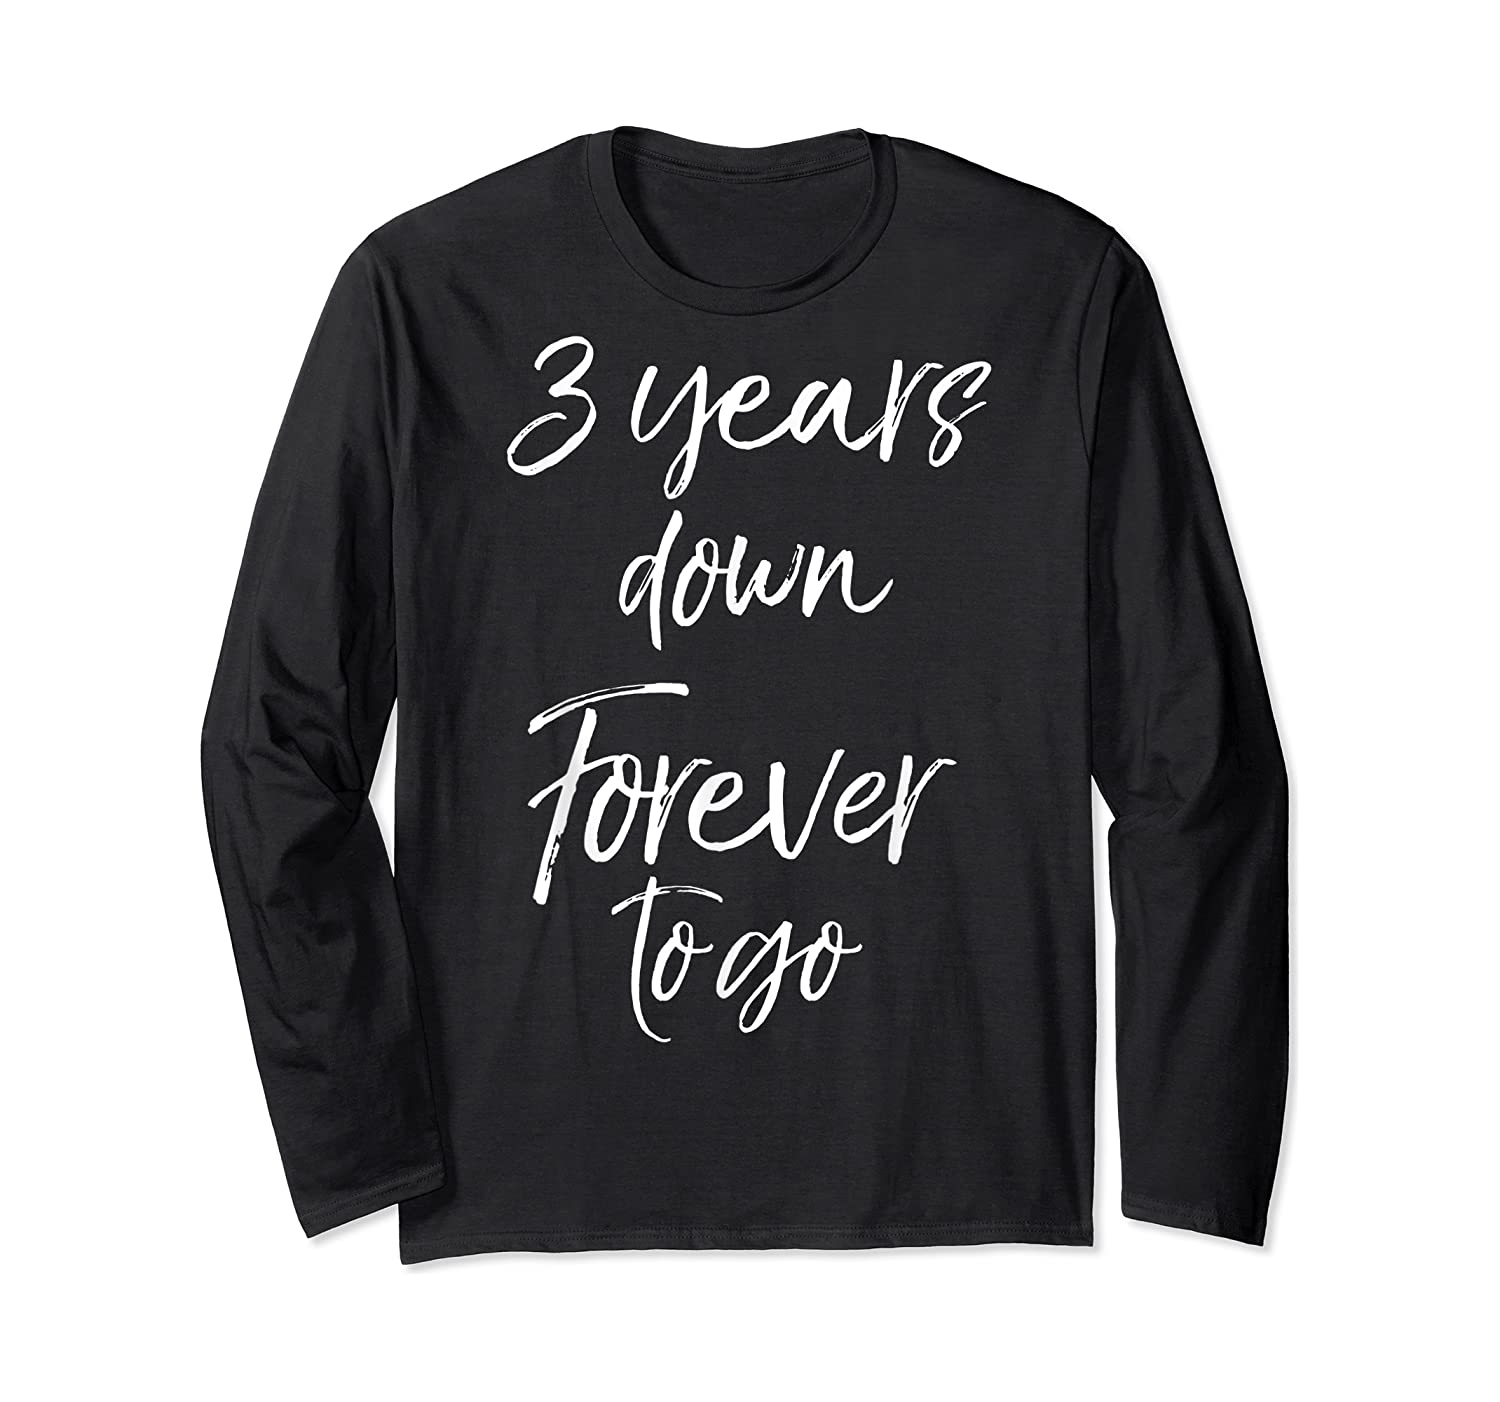 3rd Anniversary Gifts For Couples 3 Years Down Forever To Go Shirts Long Sleeve T-shirt